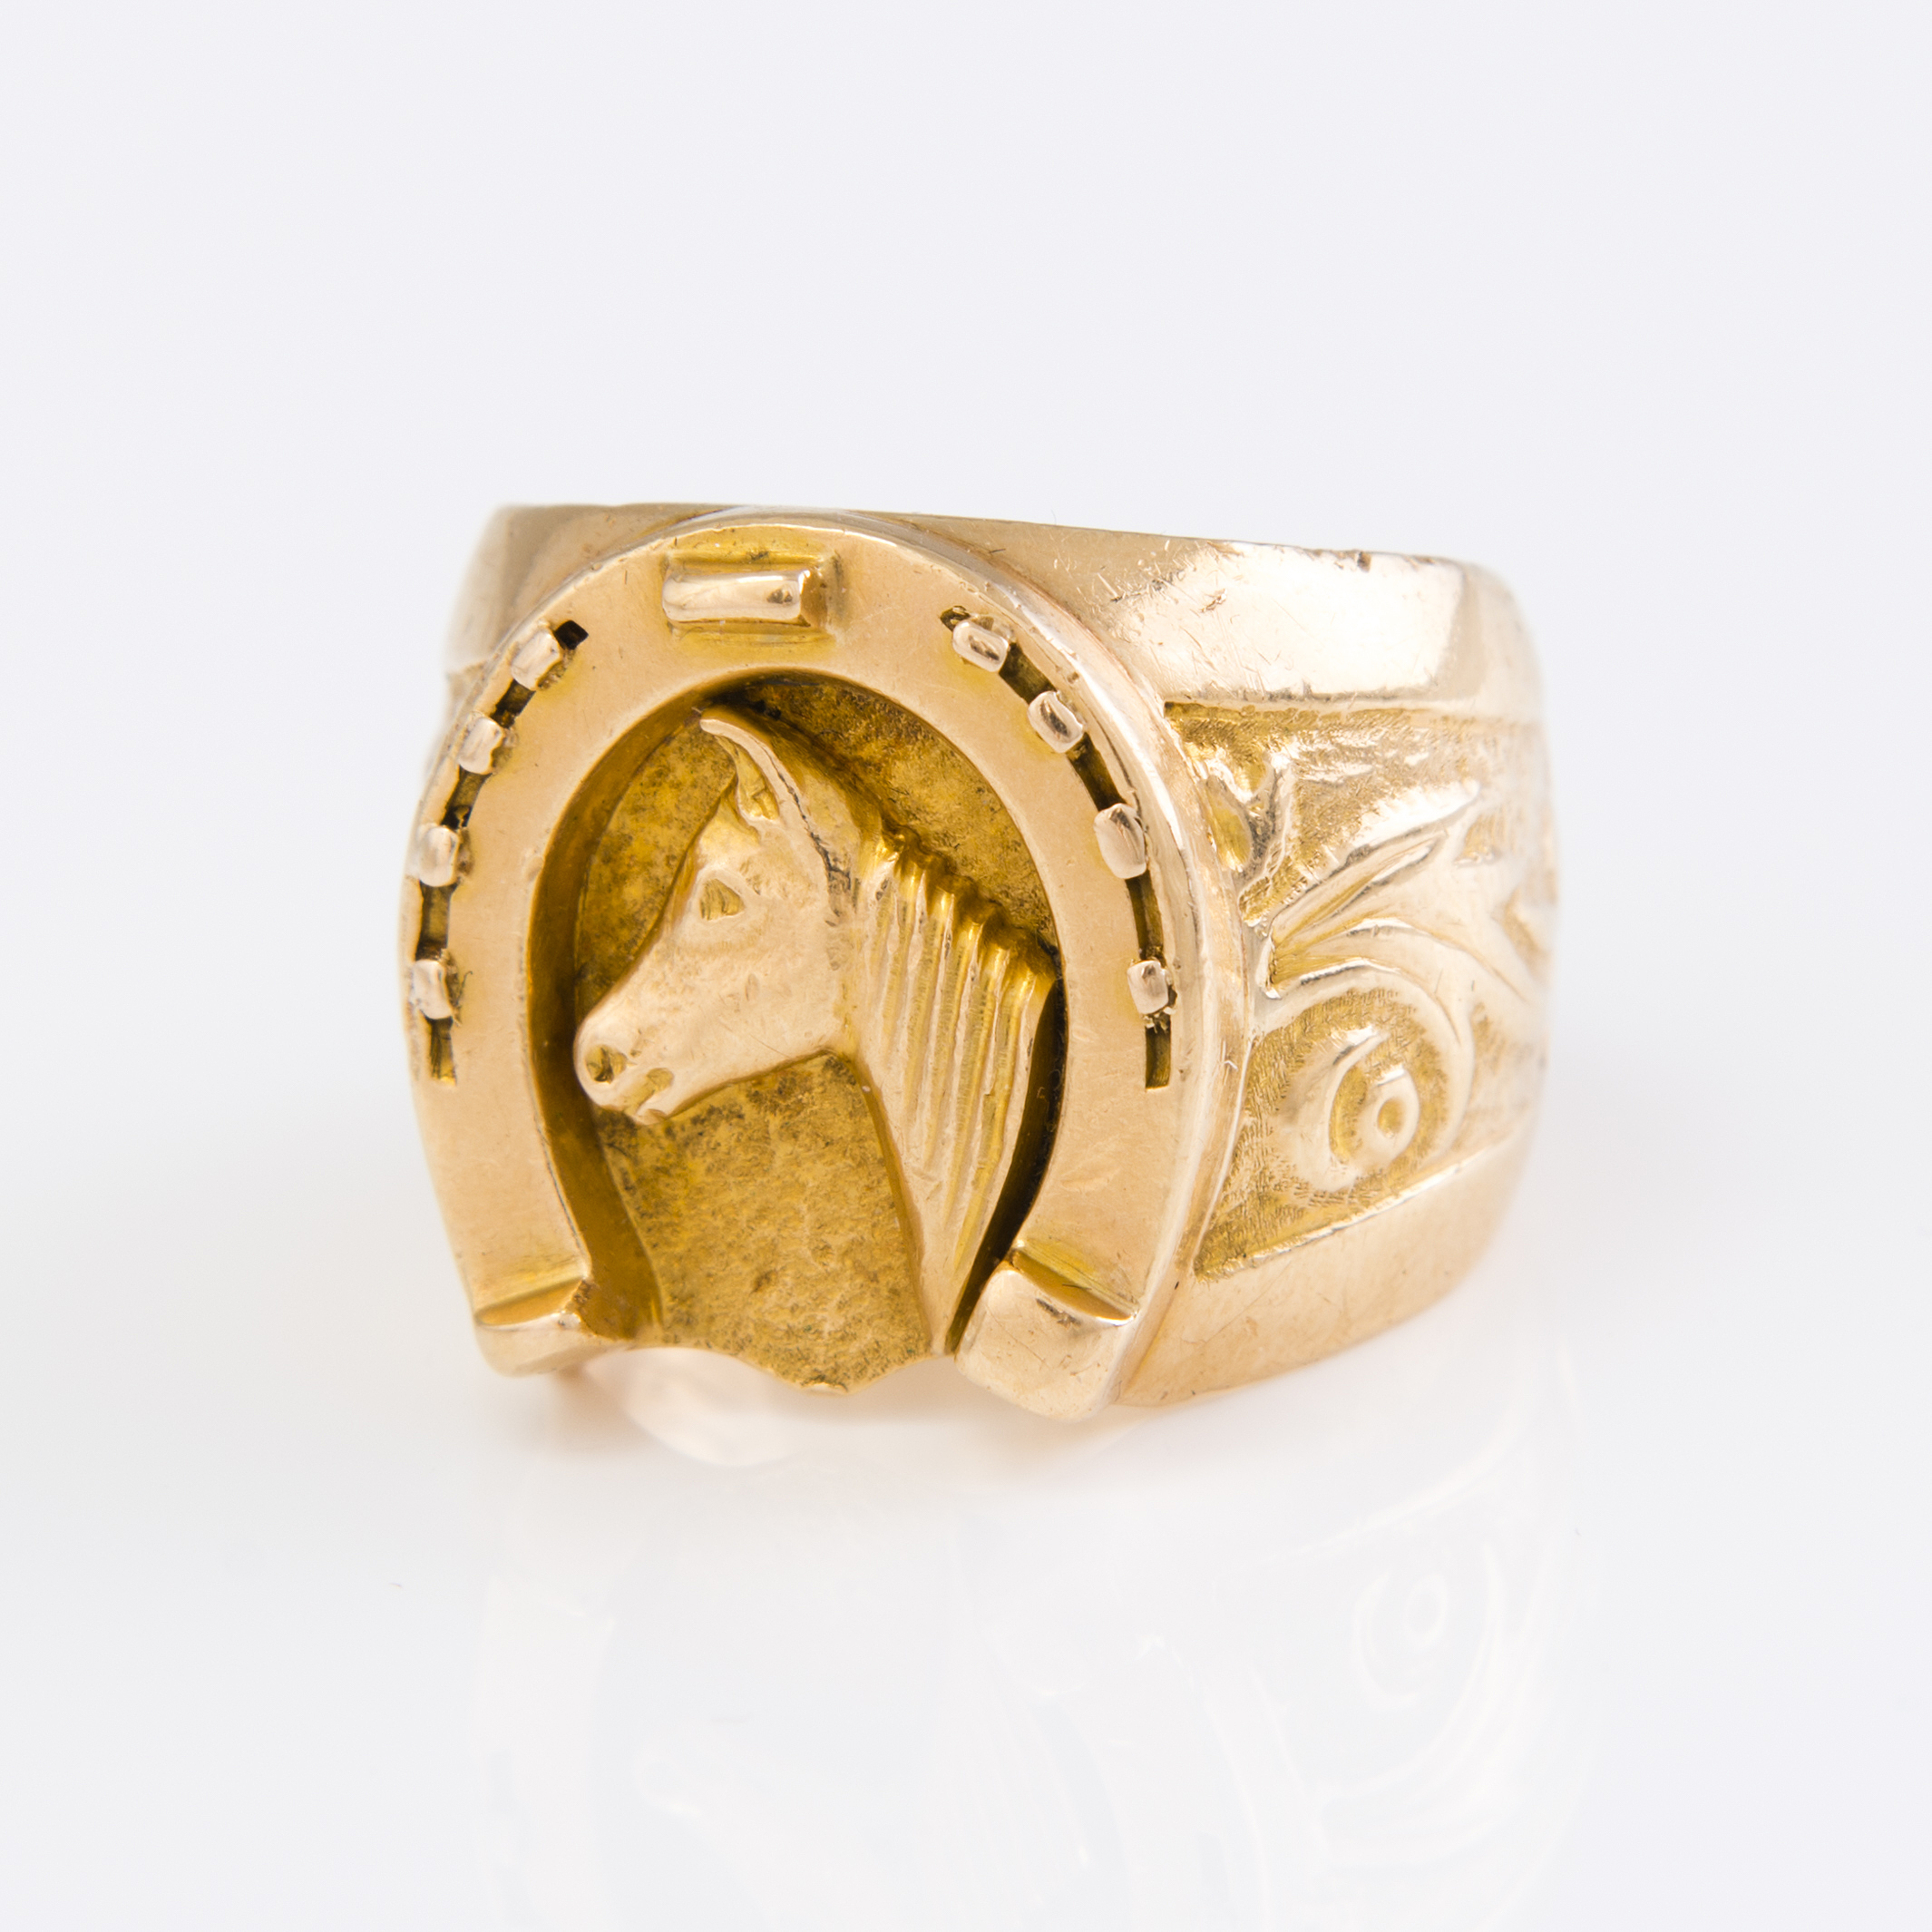 A 18k Gold Ring With A Horseshoe And Horse Finland 1970 Bukowskis